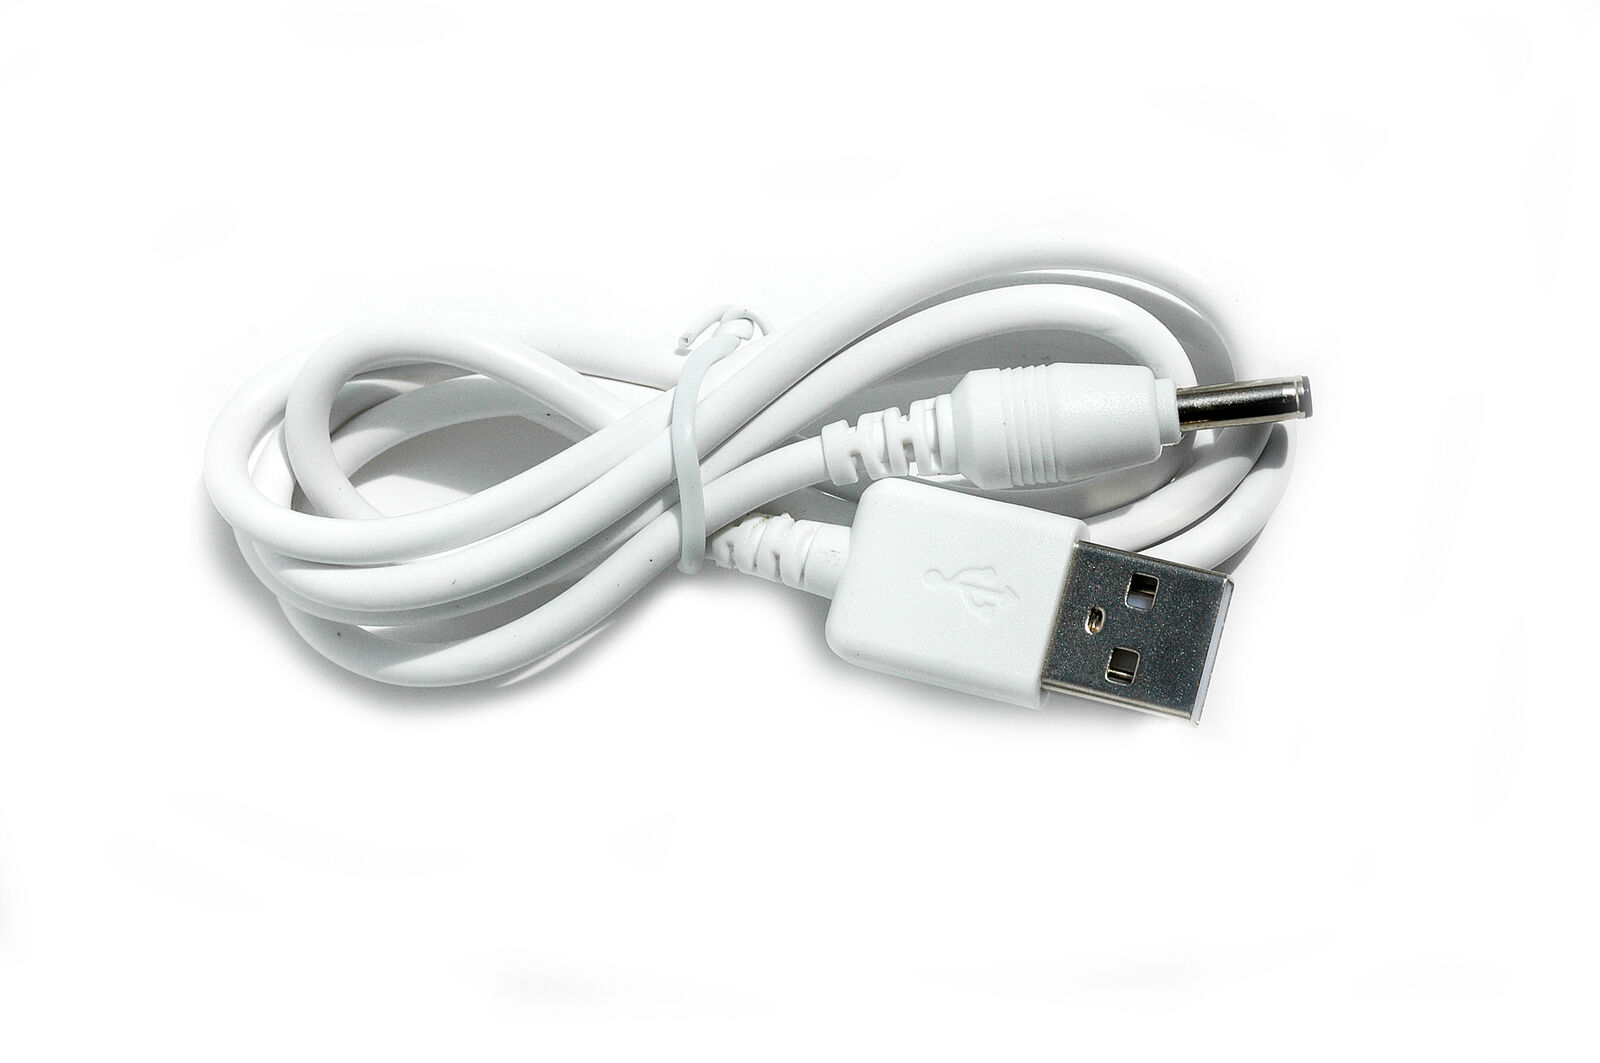 90cm USB White Charger Cable for Motorola MBP18 MBP18BU Baby/'s Unit Baby Monitor